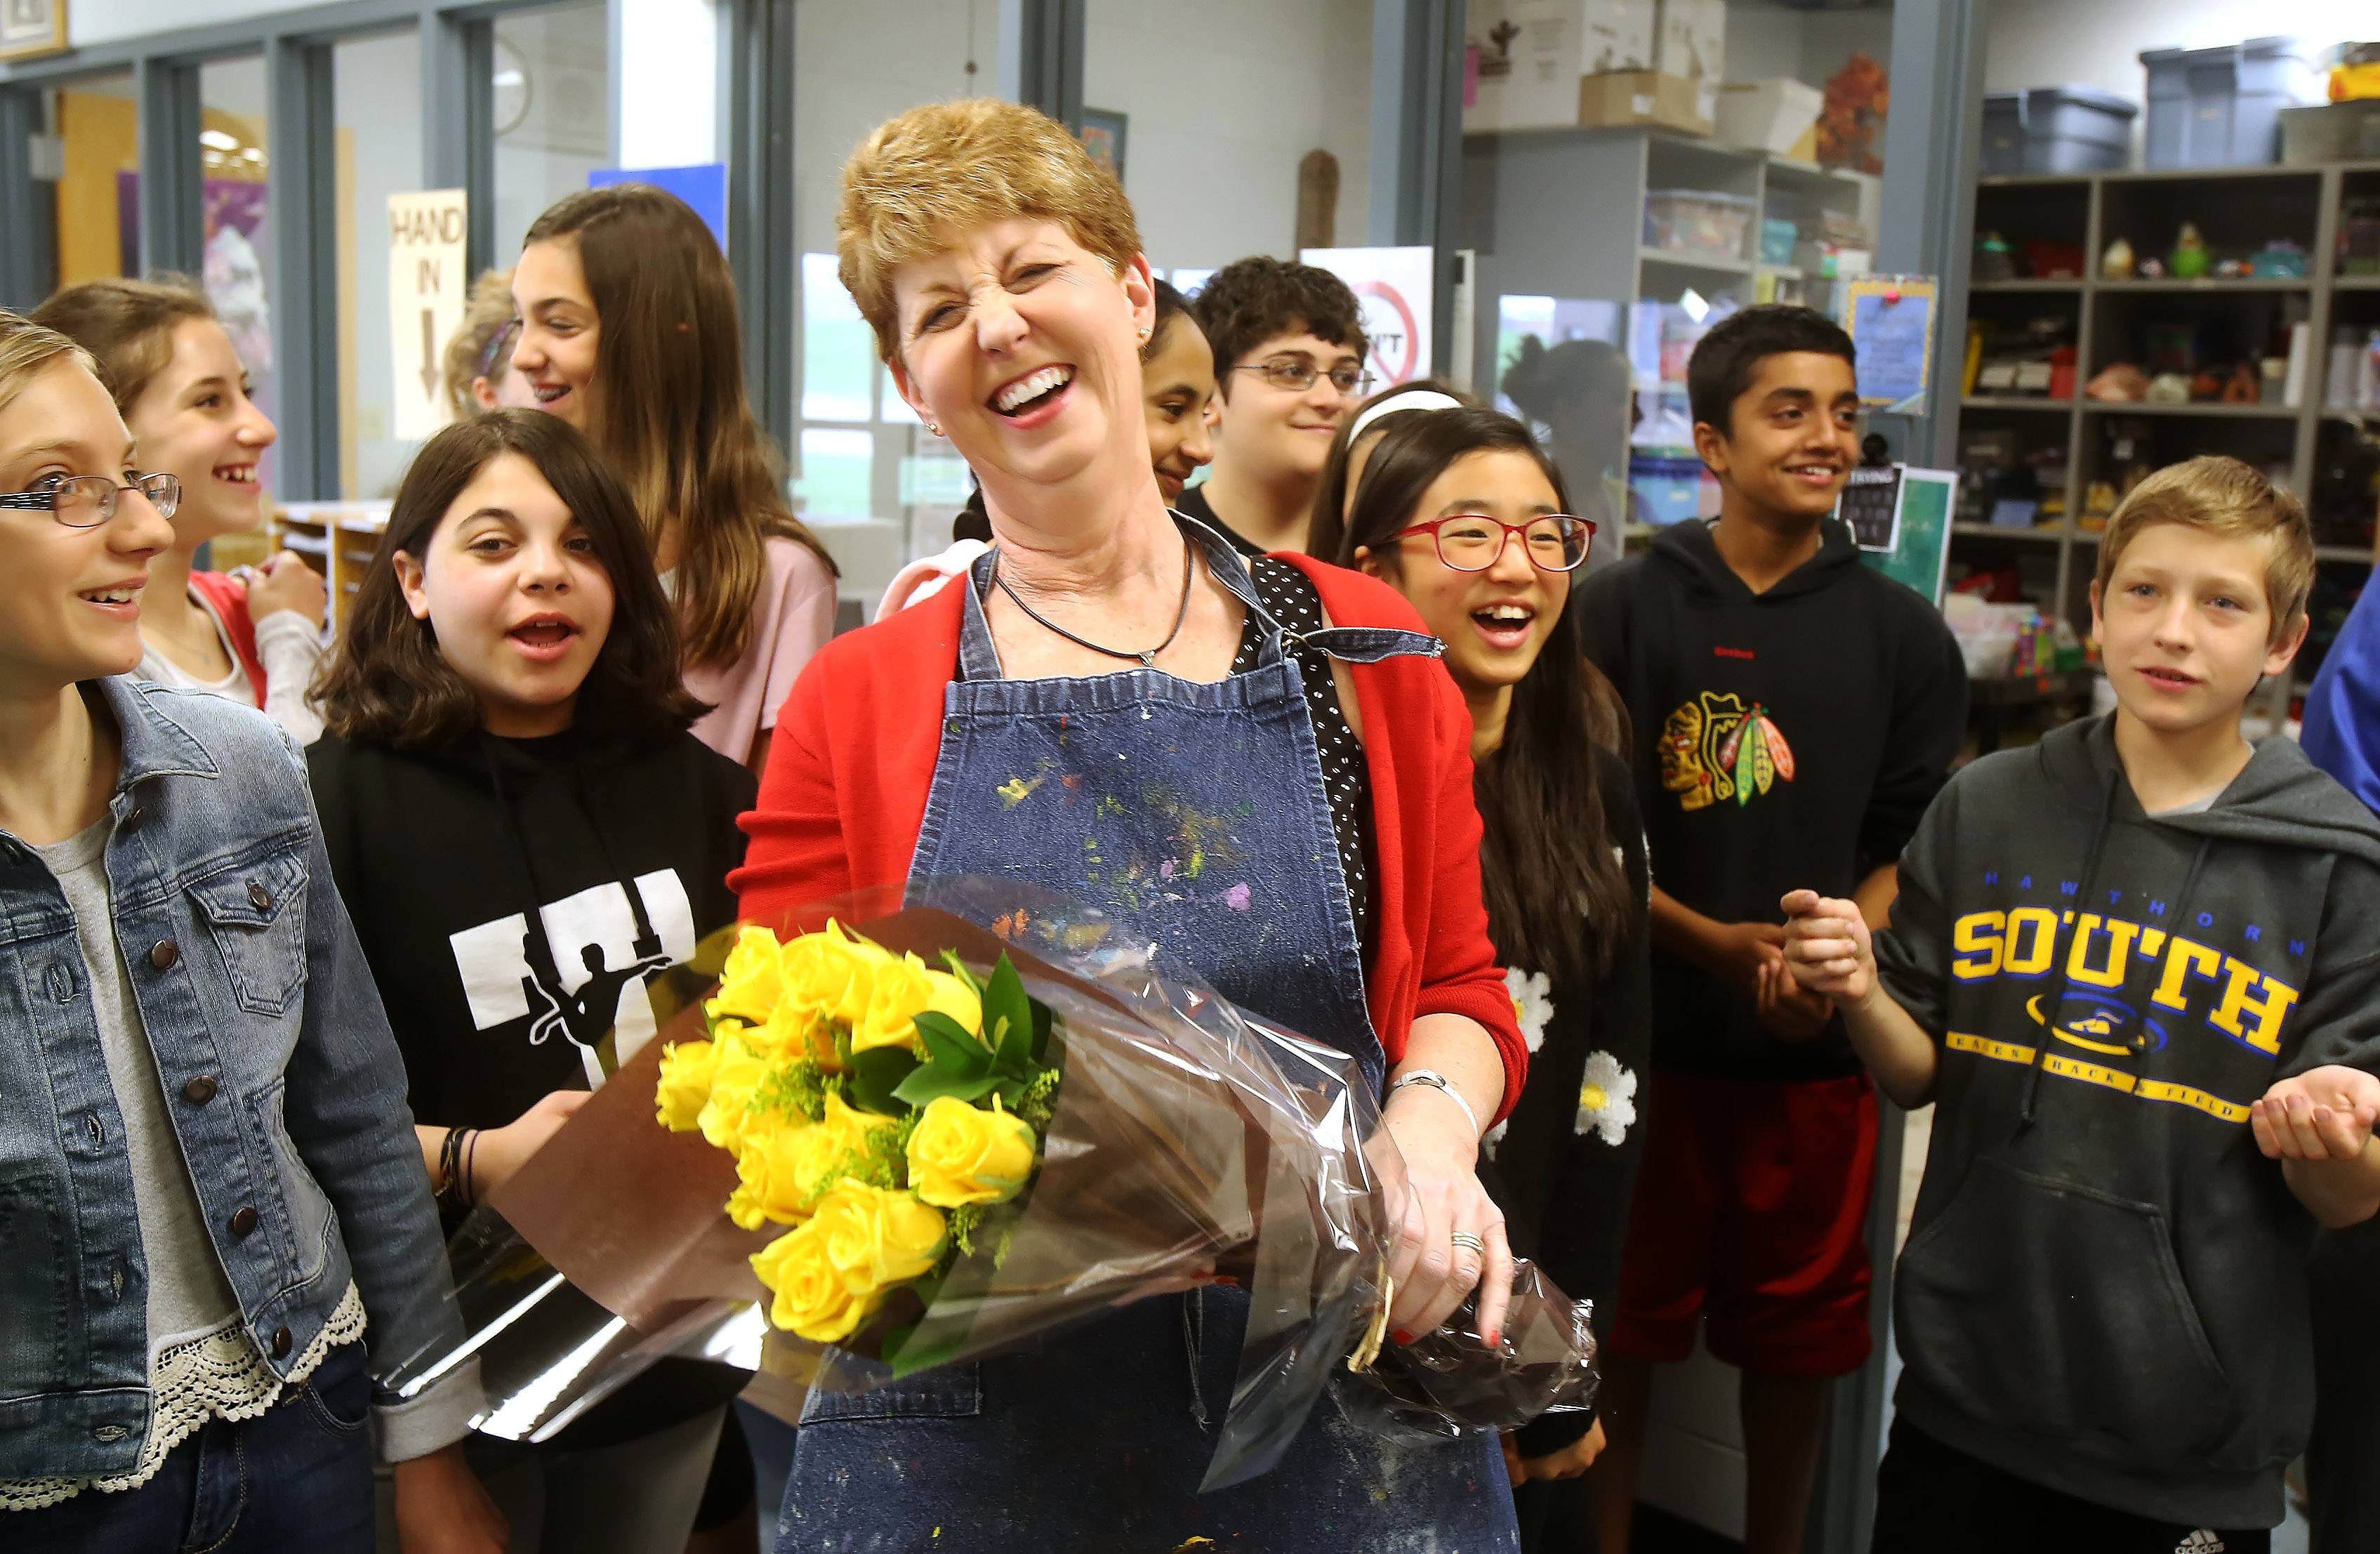 Hawthorn Middle School South art instructor Mary Benton is surprised Wednesday morning when she learns she's received the prestigious Golden Apple Award for Excellence in Teaching during a presentation at the Vernon Hills school. She was the only teacher in Lake County to receive the award.